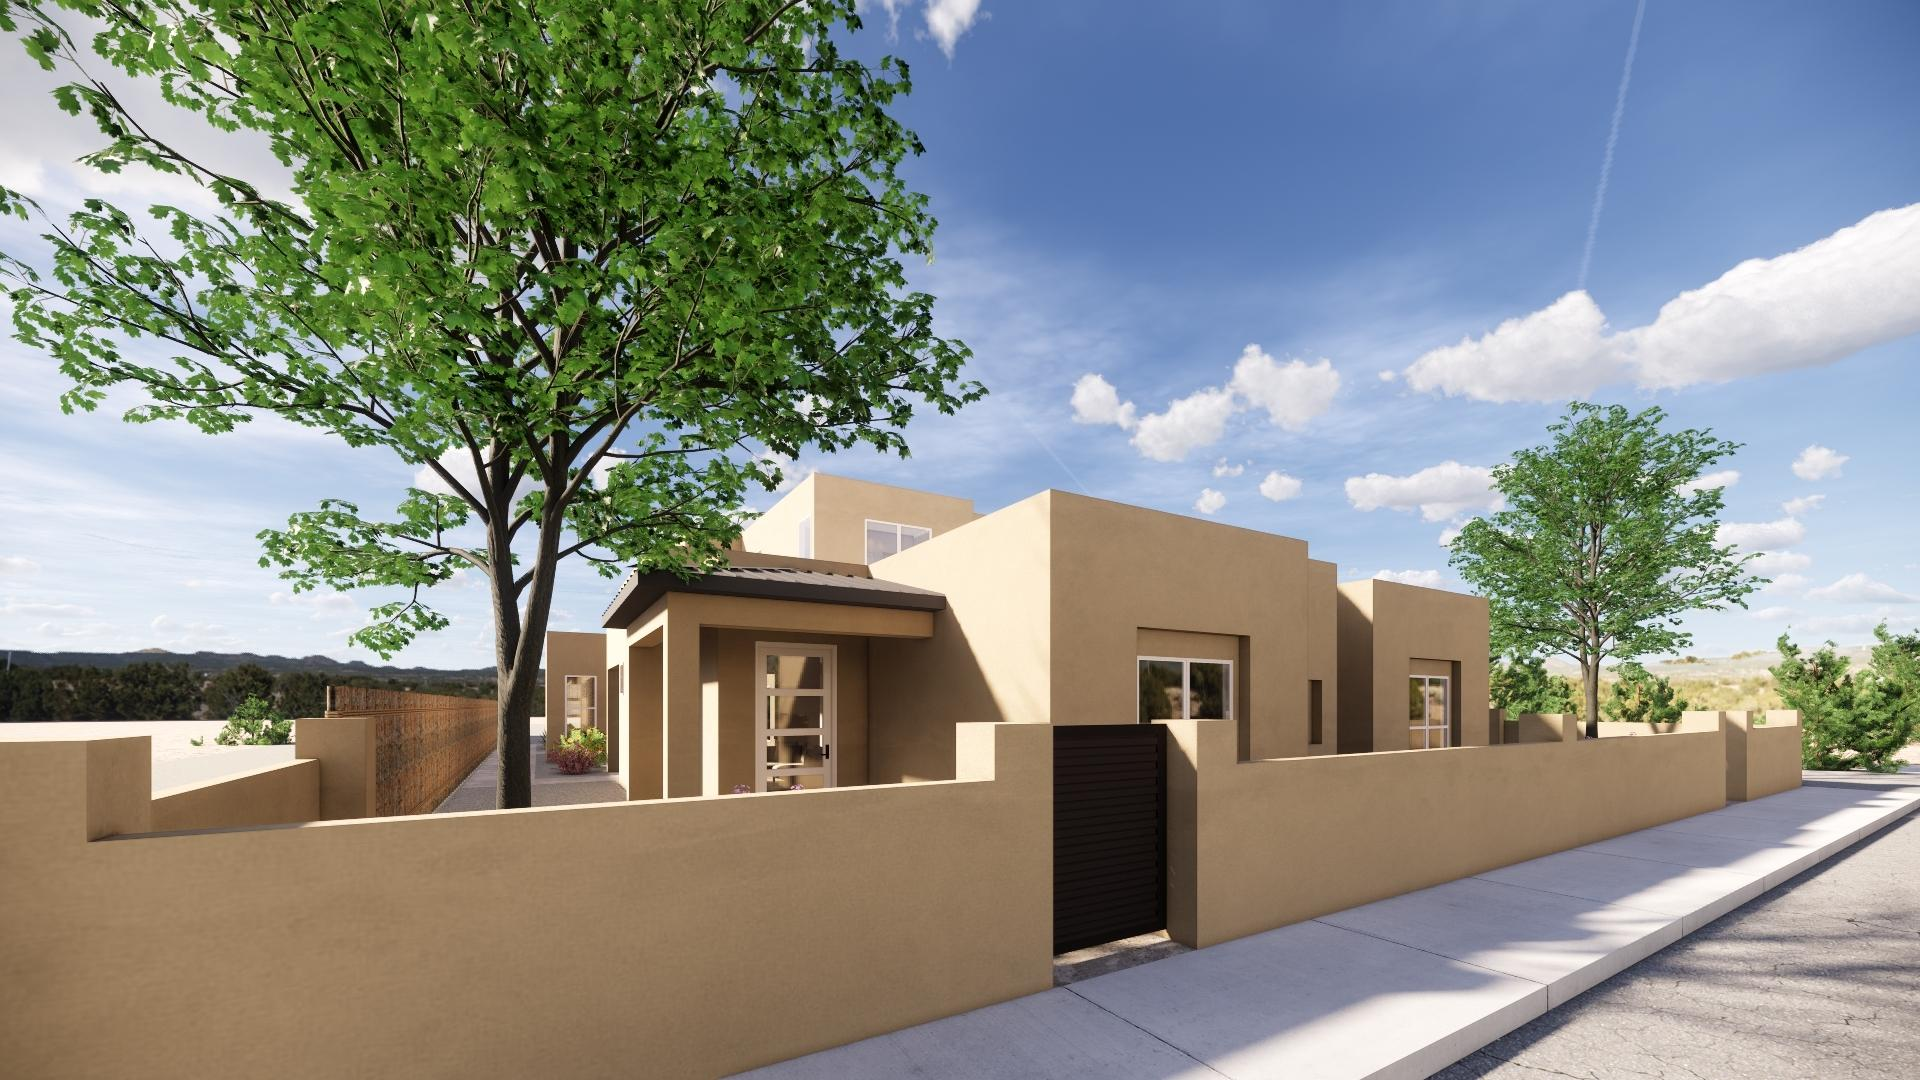 Still haven't found the perfect home?  Located with easy access to I-25 and neighbors to the Santa Fe Community College, this Townhome is ready to-be-built to what suits your style best! Check out the Video Tour now to see how the Open Floorplan will maximize the natural light and creates an inviting atmosphere! You'll notice your new home will have a beautiful kitchen that will boast a large island that looks out onto your covered Patio where you and your guests will gather to make memories! The kitchen also has stainless steel appliances, plenty of counter space and a pantry! With the master located on the main floor and it will be your favorite place to unwind! Outside, you'll find the patio will be the perfect place to enjoy the NM weather. There will also be a two car garage.